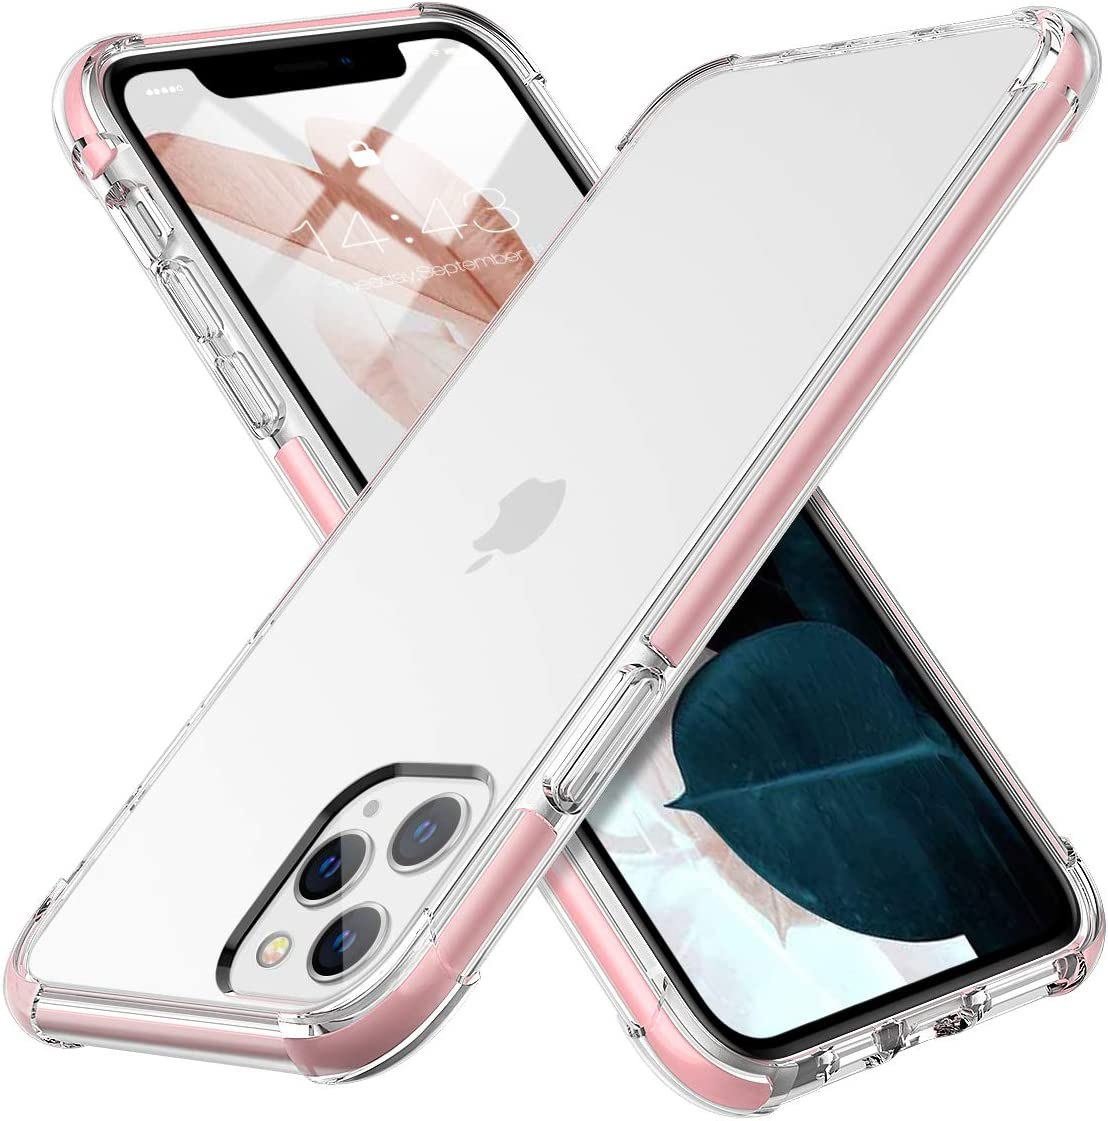 MILPROX iPhone 11 Pro Case, Crystal Clear Thin Slim Shell Anti-Yellow Anti-Slippery Shockproof Protective Bumper Cover Case for iPhone 11 Pro 5.8 Inch (2019)-Pink